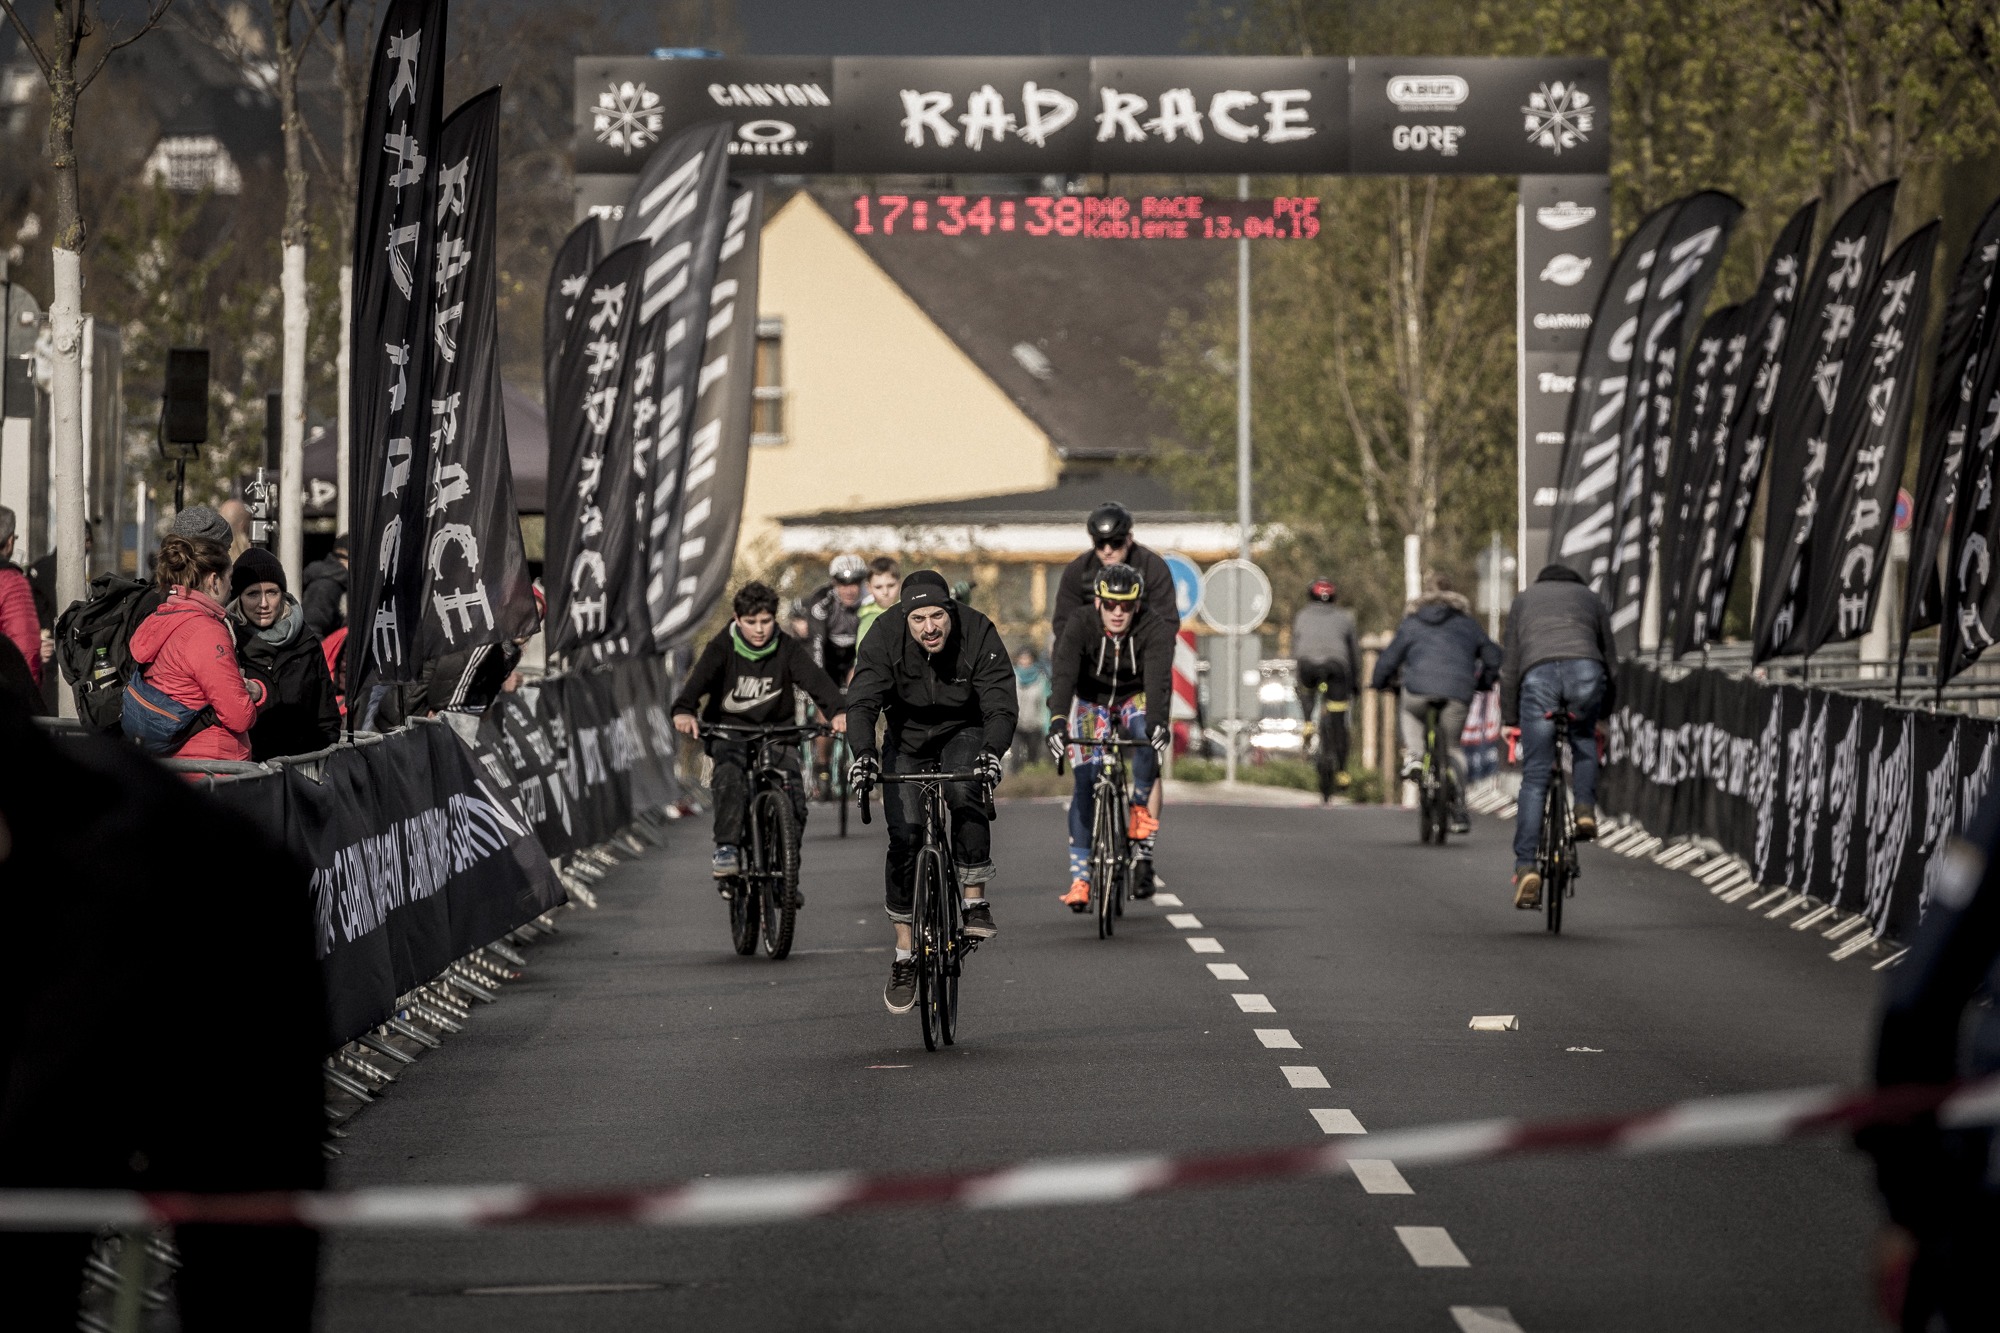 WARM UP AT THE CANYON X RAD RACE BATTLE IN KOBLENZ PIC BY Arturs Pavlovs